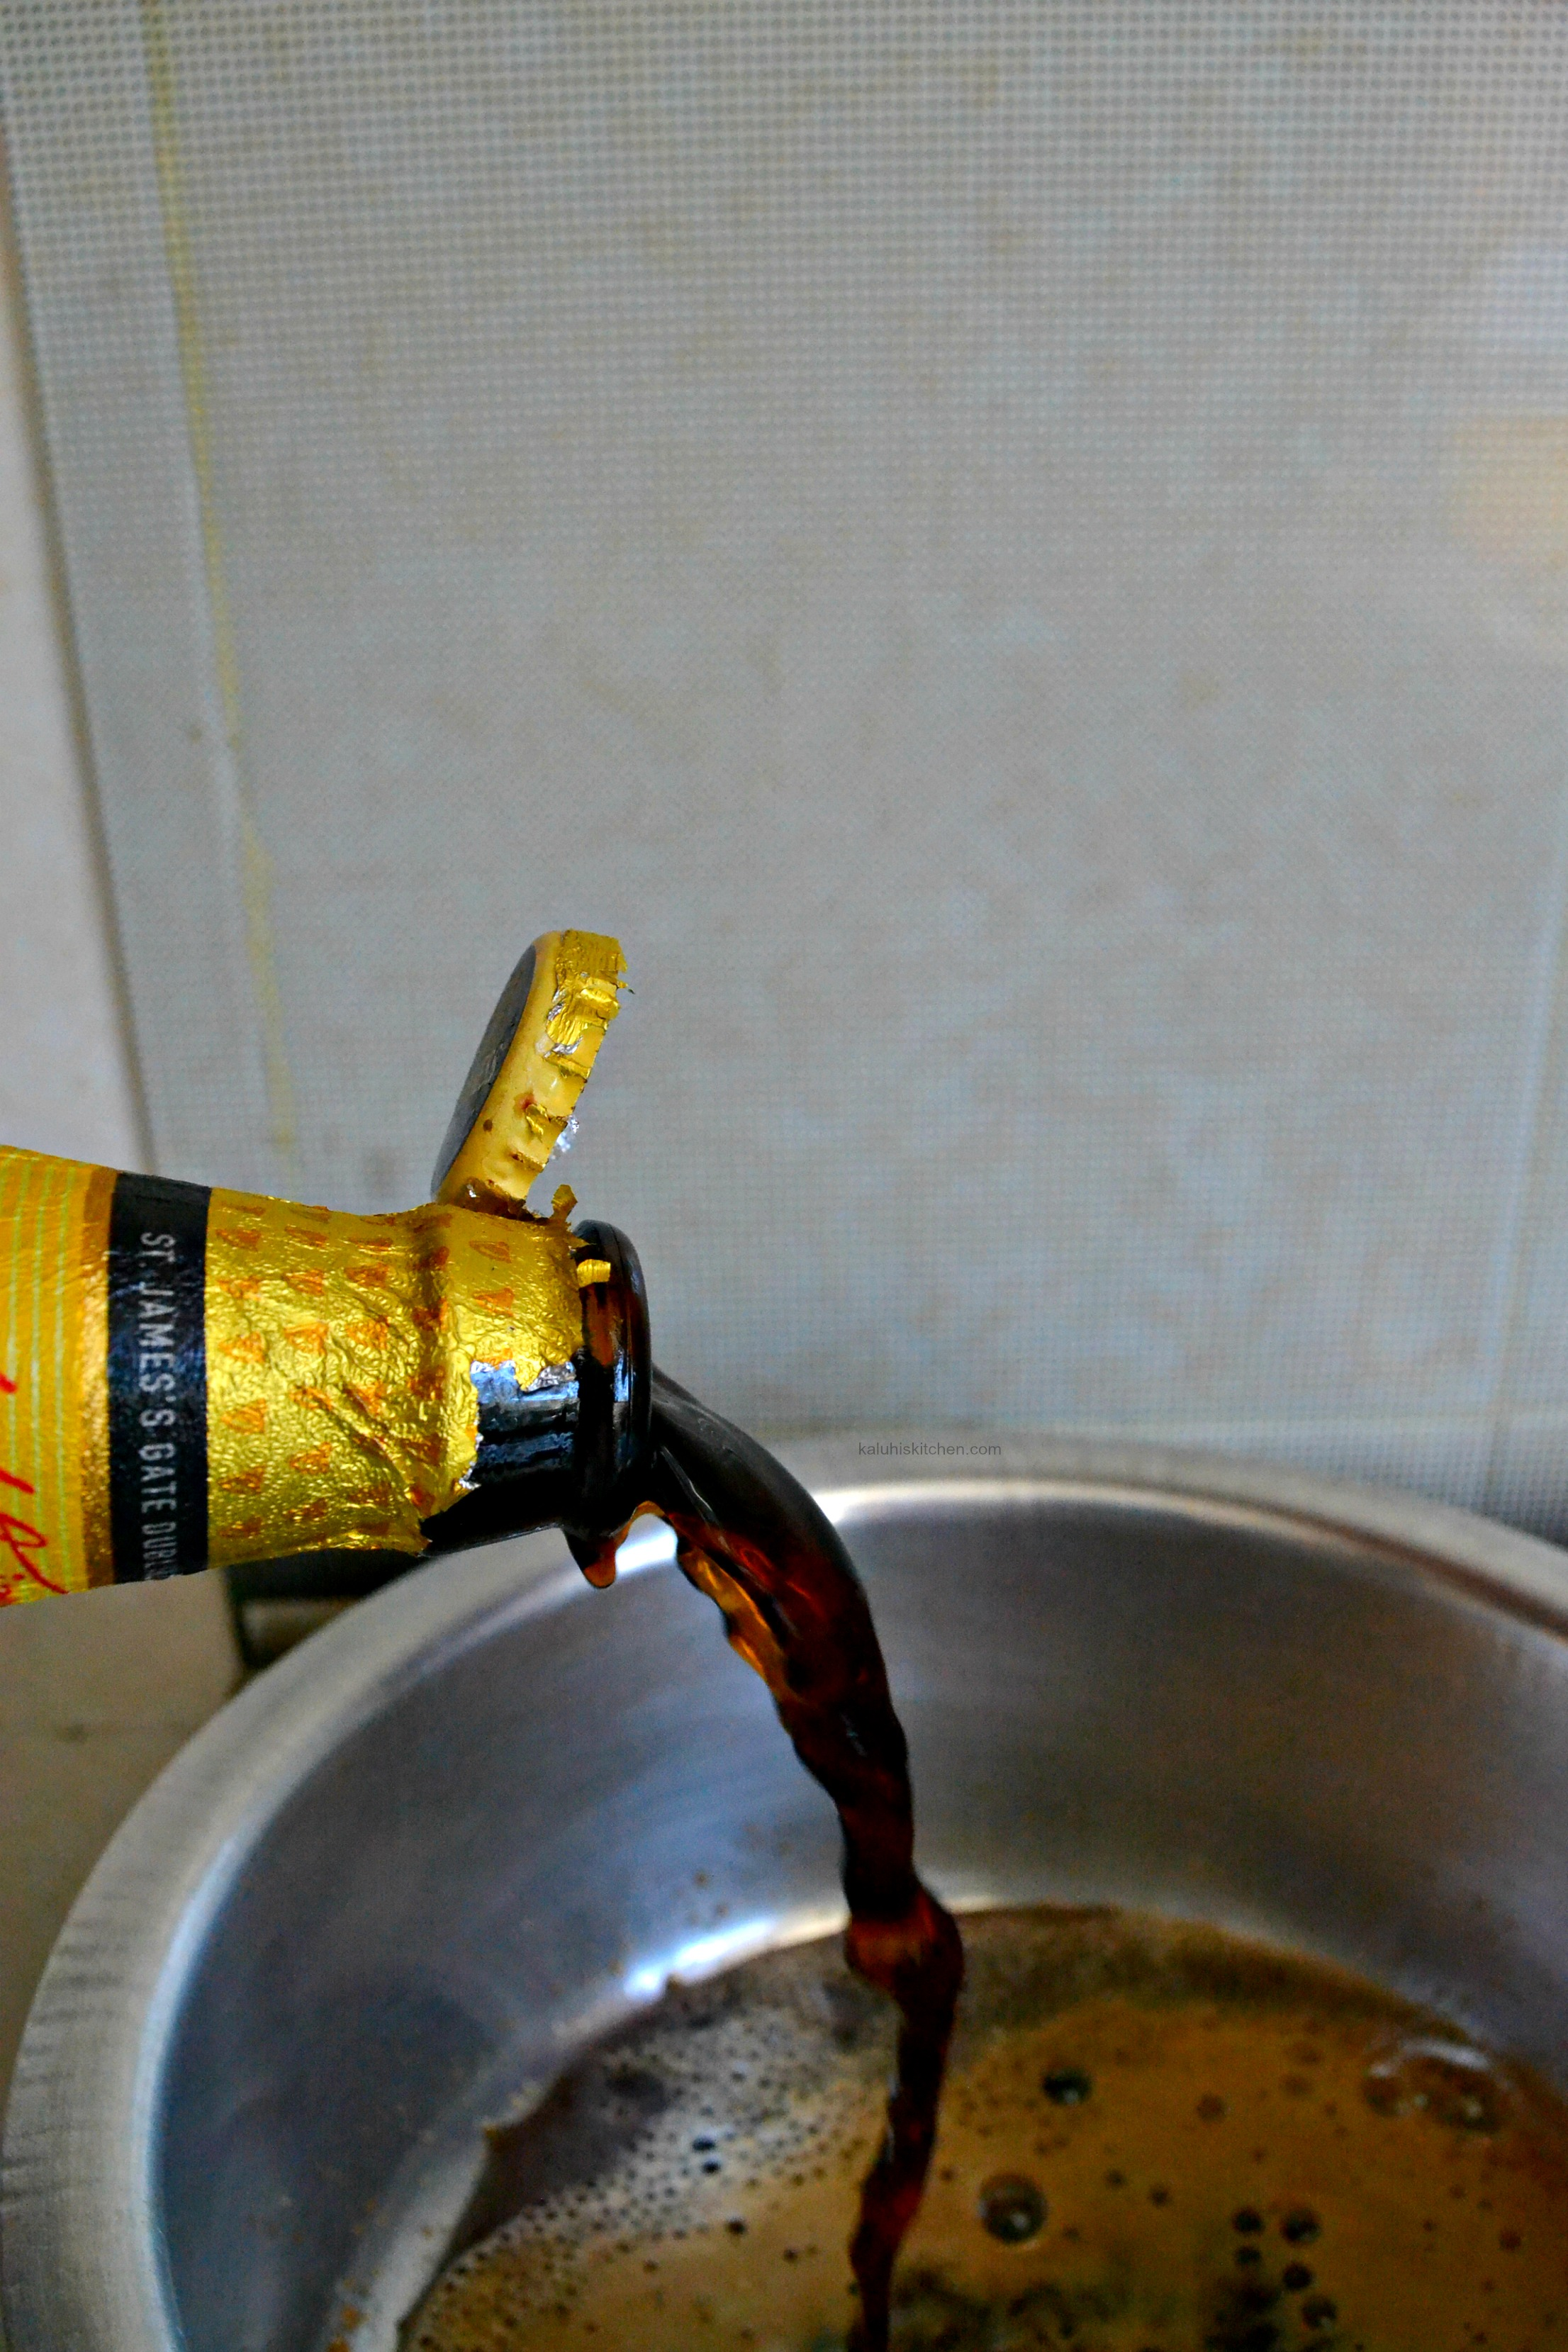 cooking-with-guinness_how-to-make-a-sauce-with-guinness_how-to-make-drumsticks-with-guinness_kaluhiskitchen-com_how-to-cook-with-beer_kaluhiskitchen-com